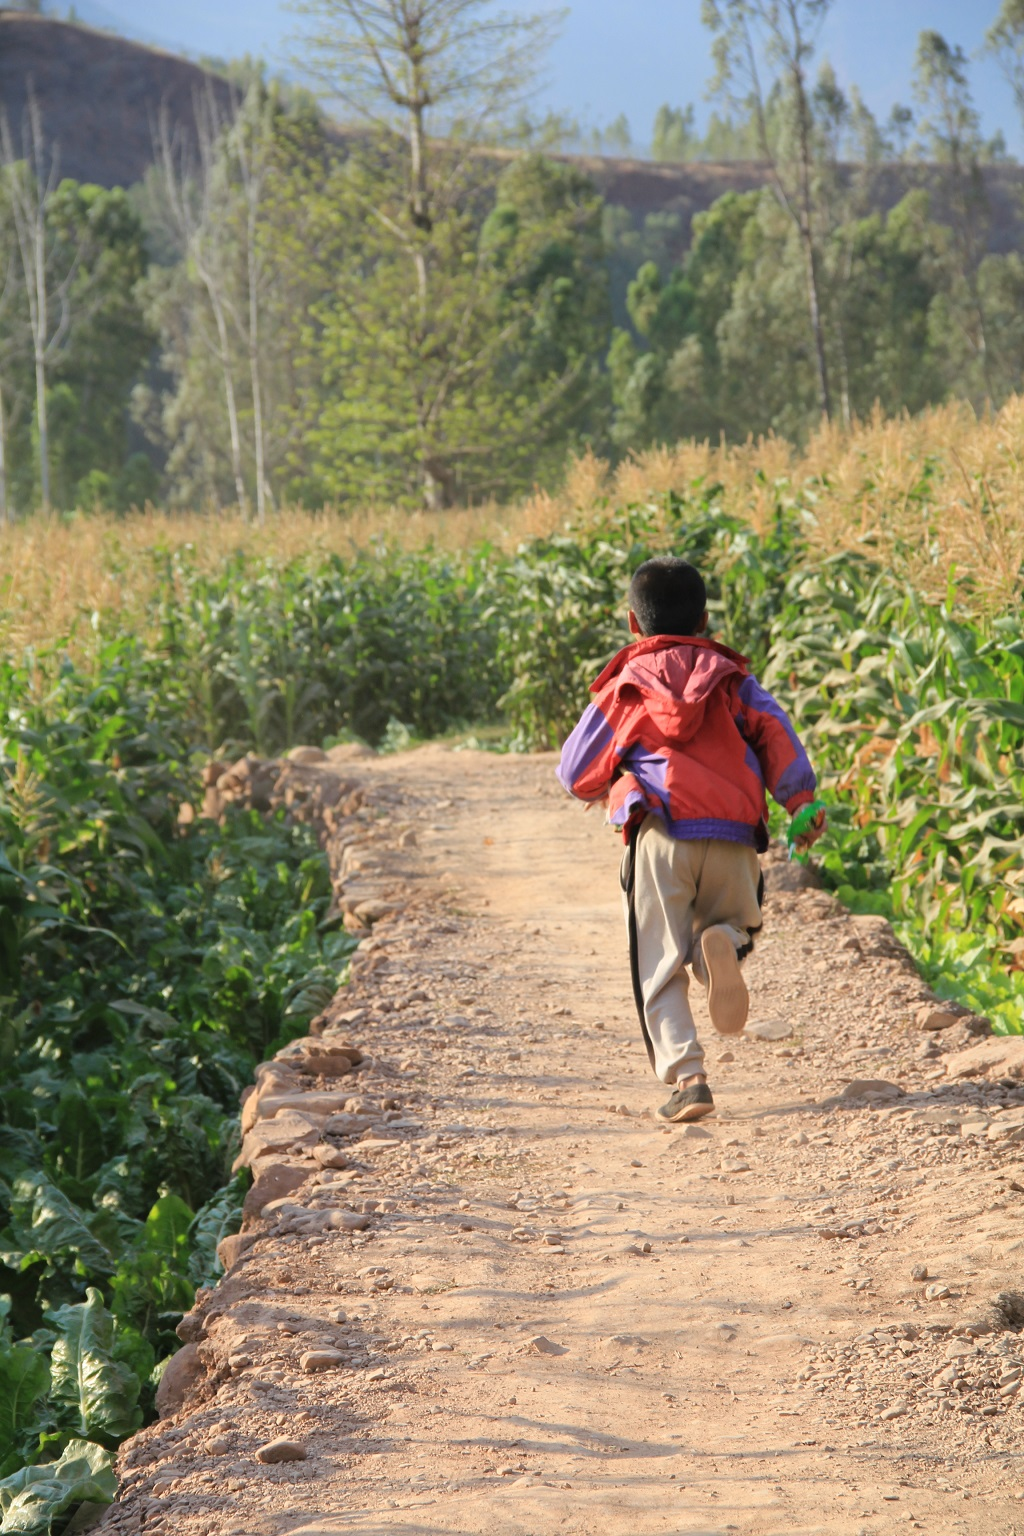 A kid running happily in the field